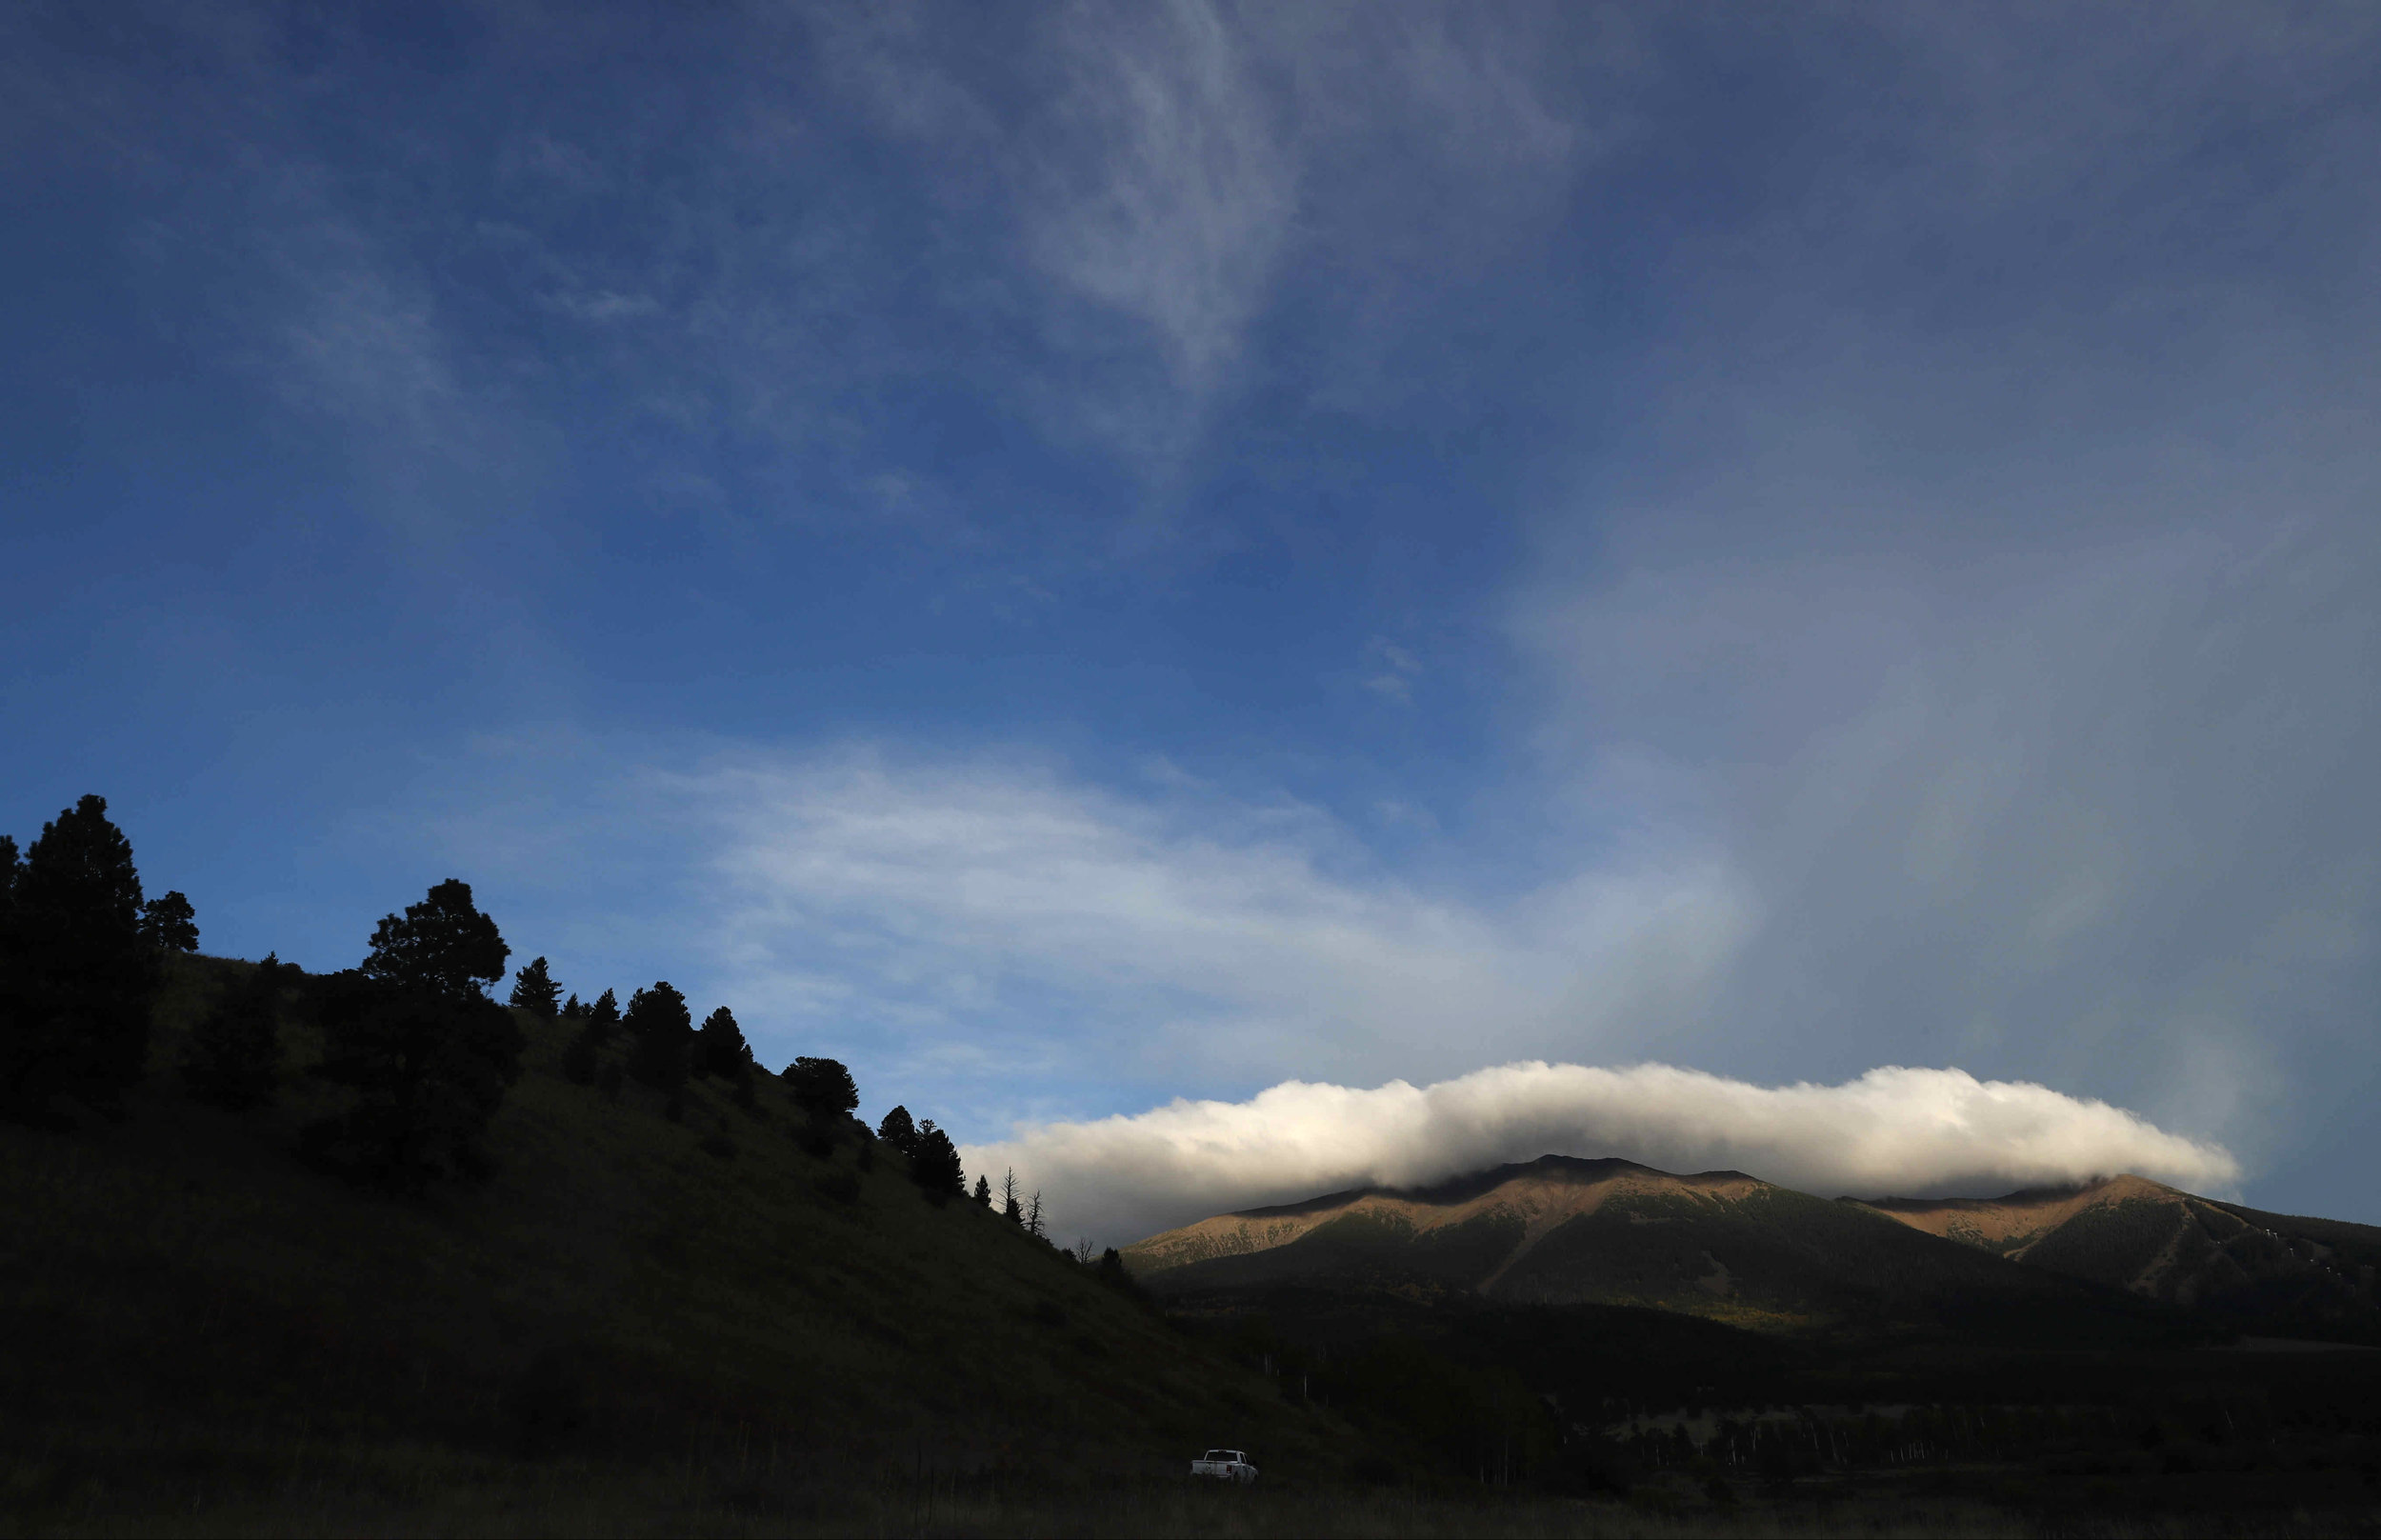 Clouds settle on the San Francisco Peaks before a storm on Tuesday, Sept. 27, 2016, in Flagstaff, Ariz. (Kevin Martin)